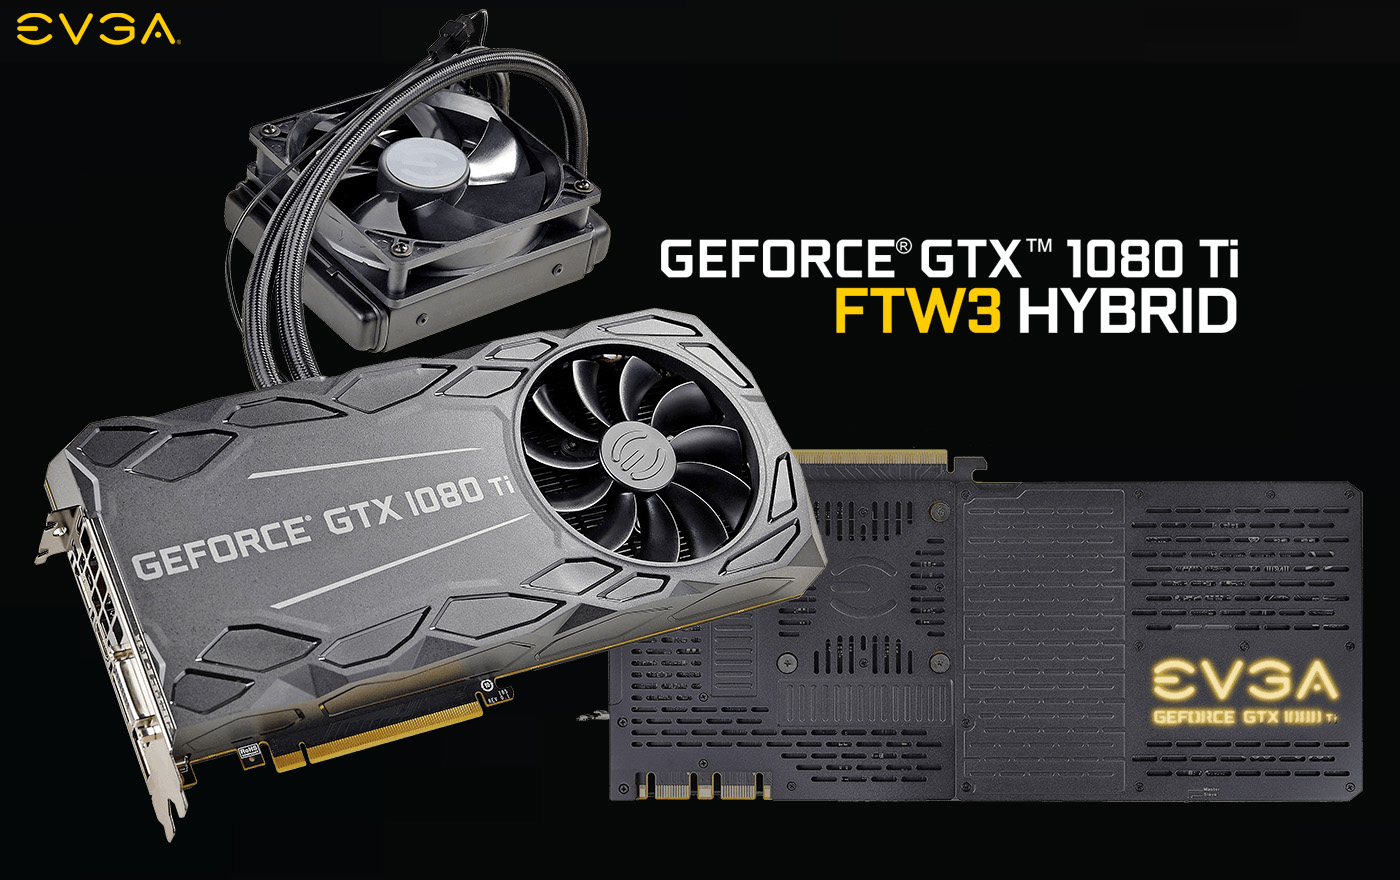 EVGA Introduces GeForce GTX 1080 Ti FTW3 HYBRID